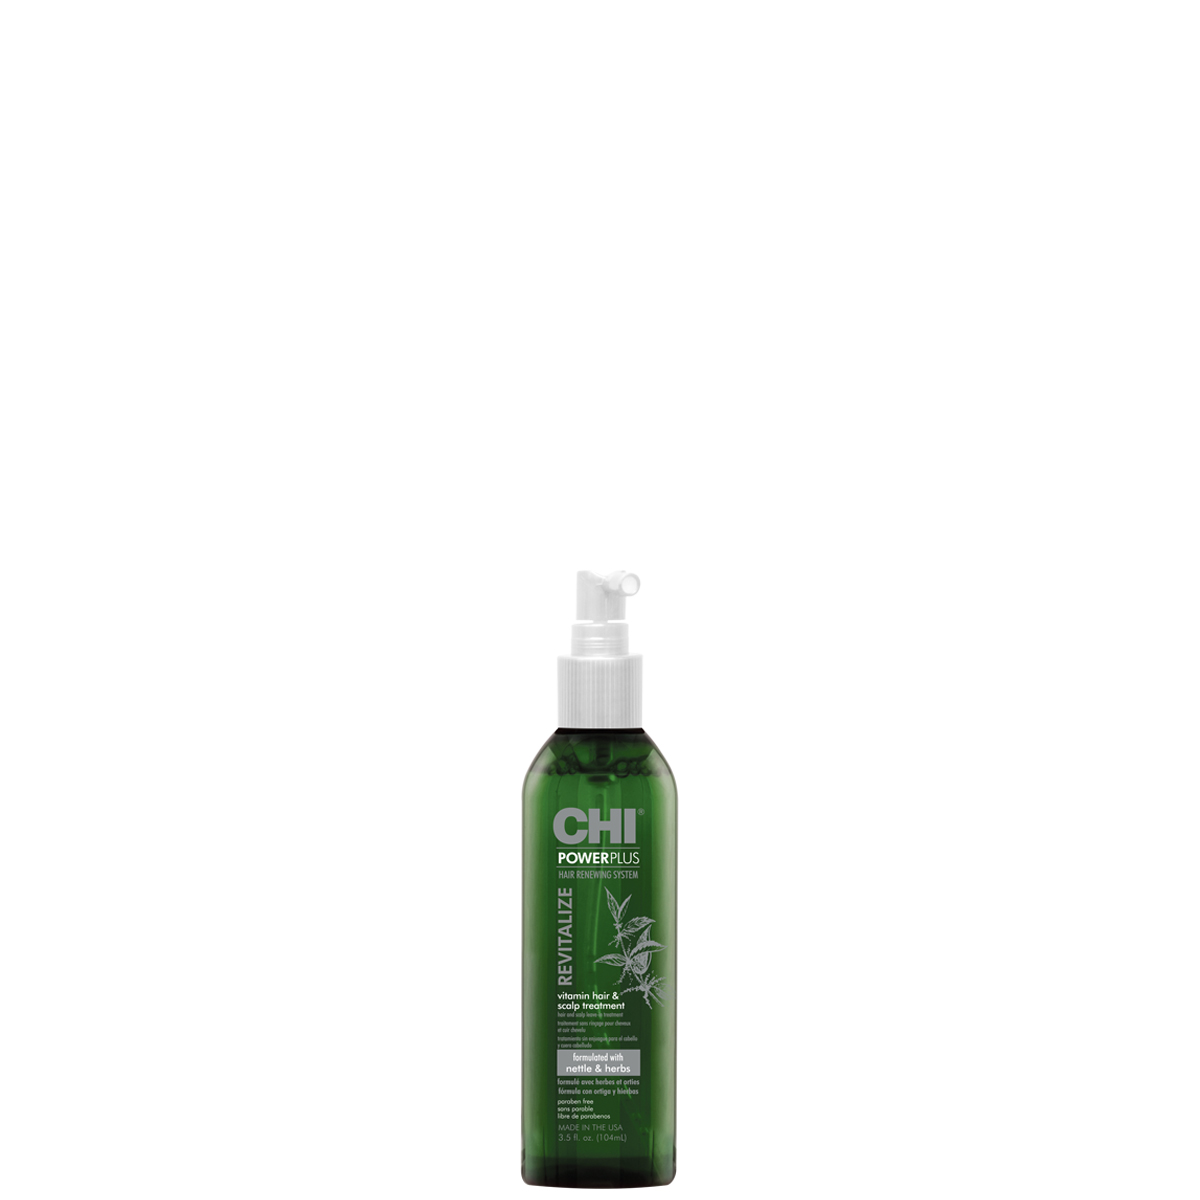 CHI Power Plus Step 1: Exfoliate Shampoo Back To School